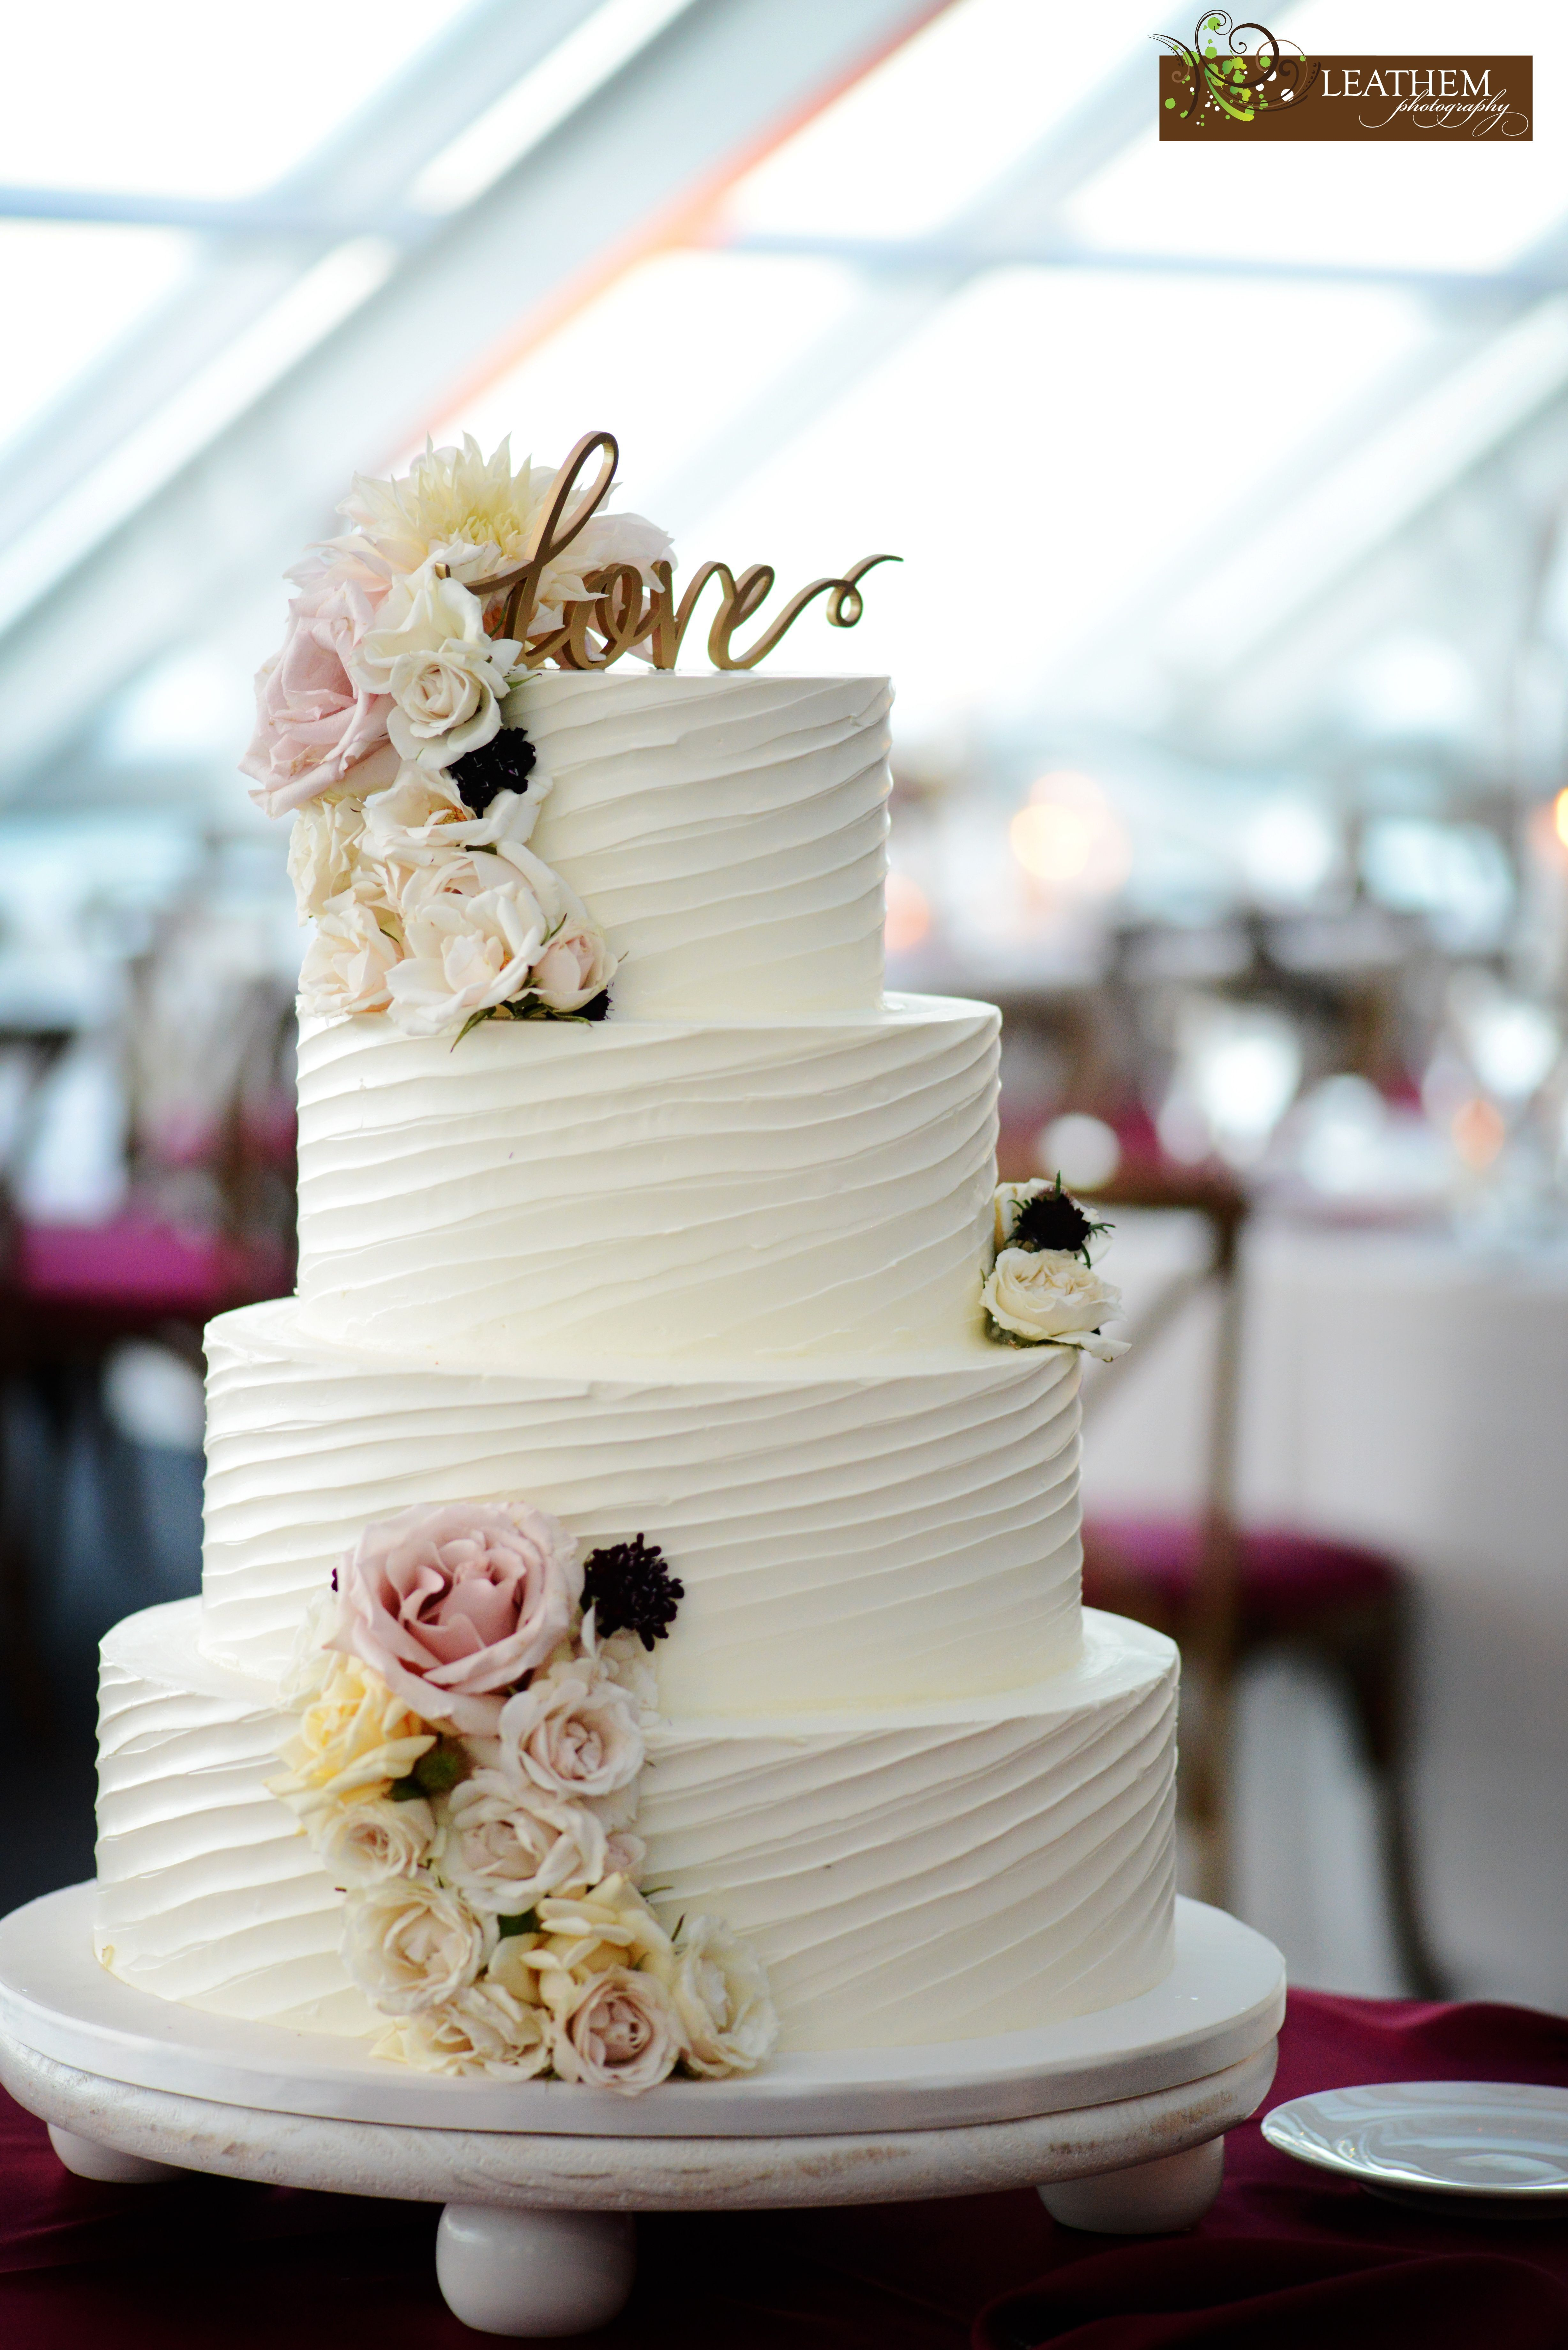 Gorgeous Textured Buttercream Wedding Cake Adorned With Fresh Floral